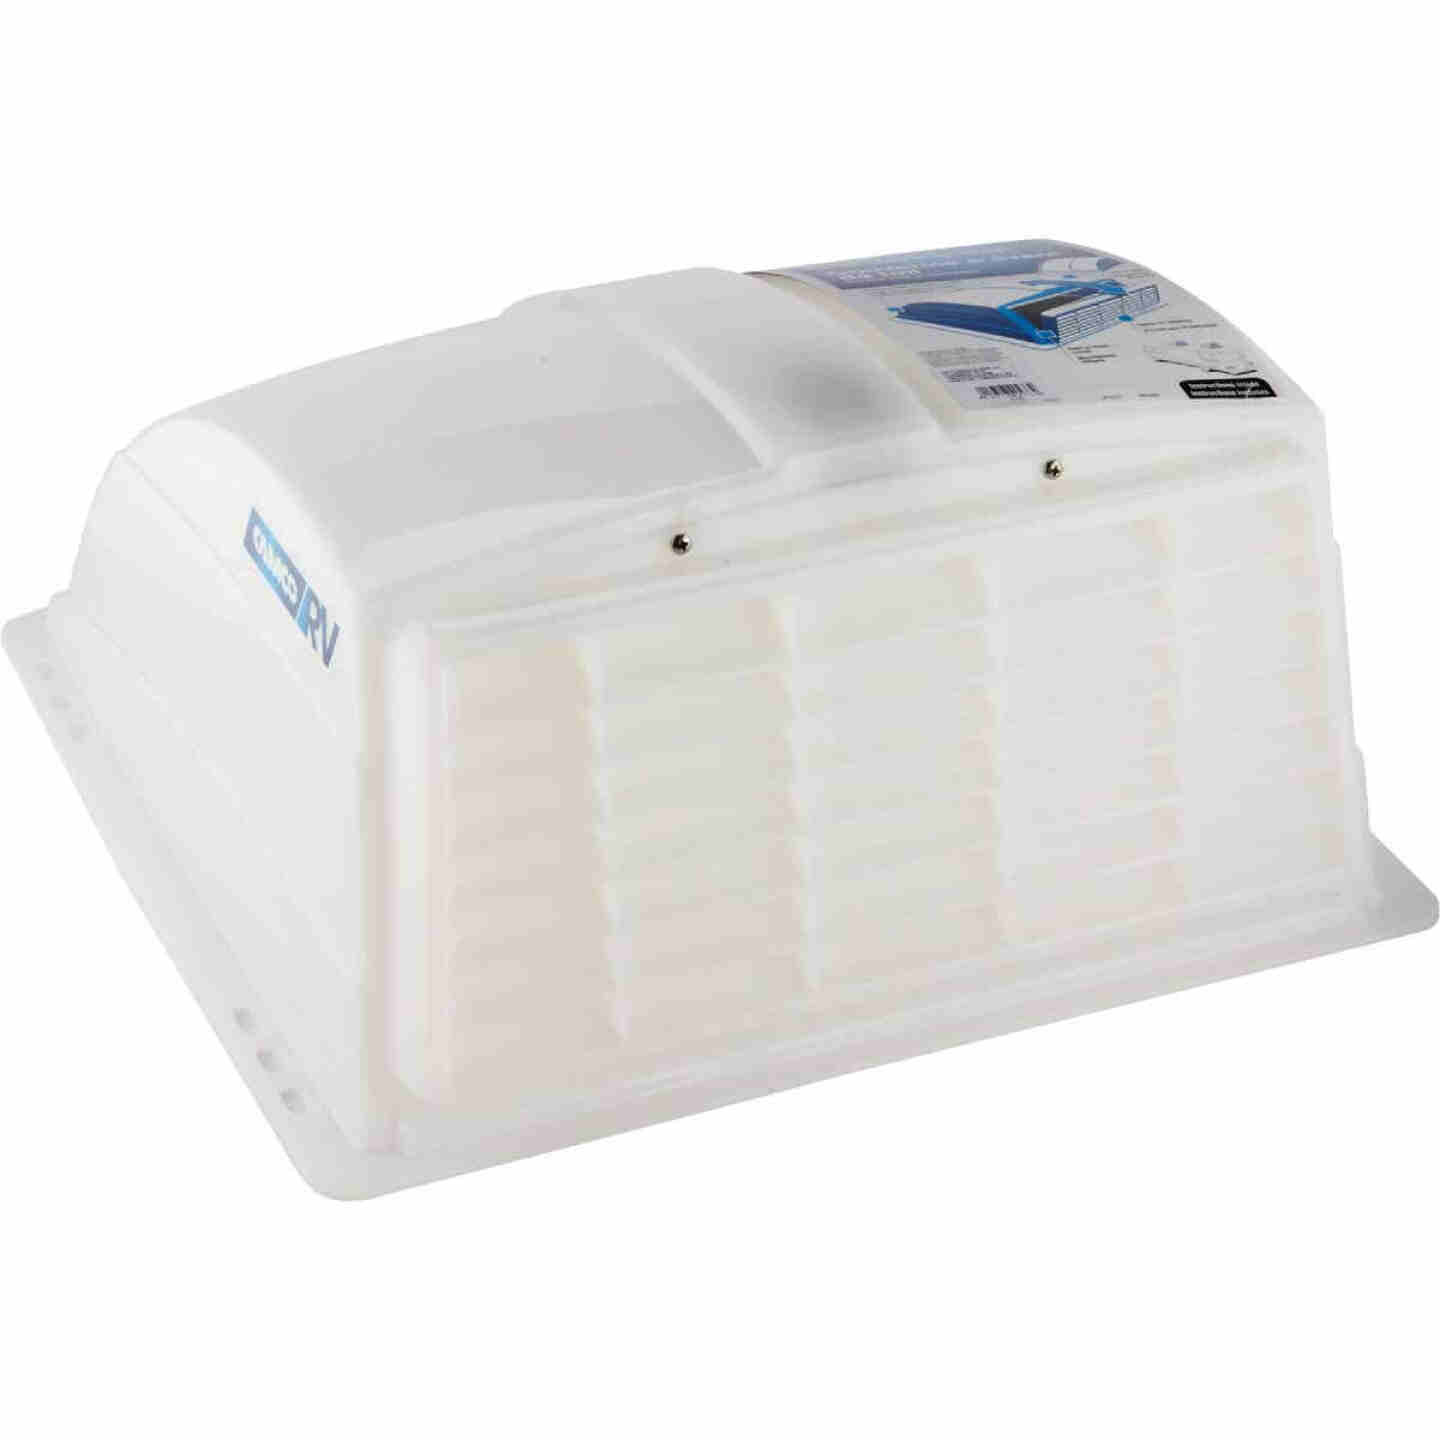 Camco 14 In. x 14 In. RV Vent Cover Image 1